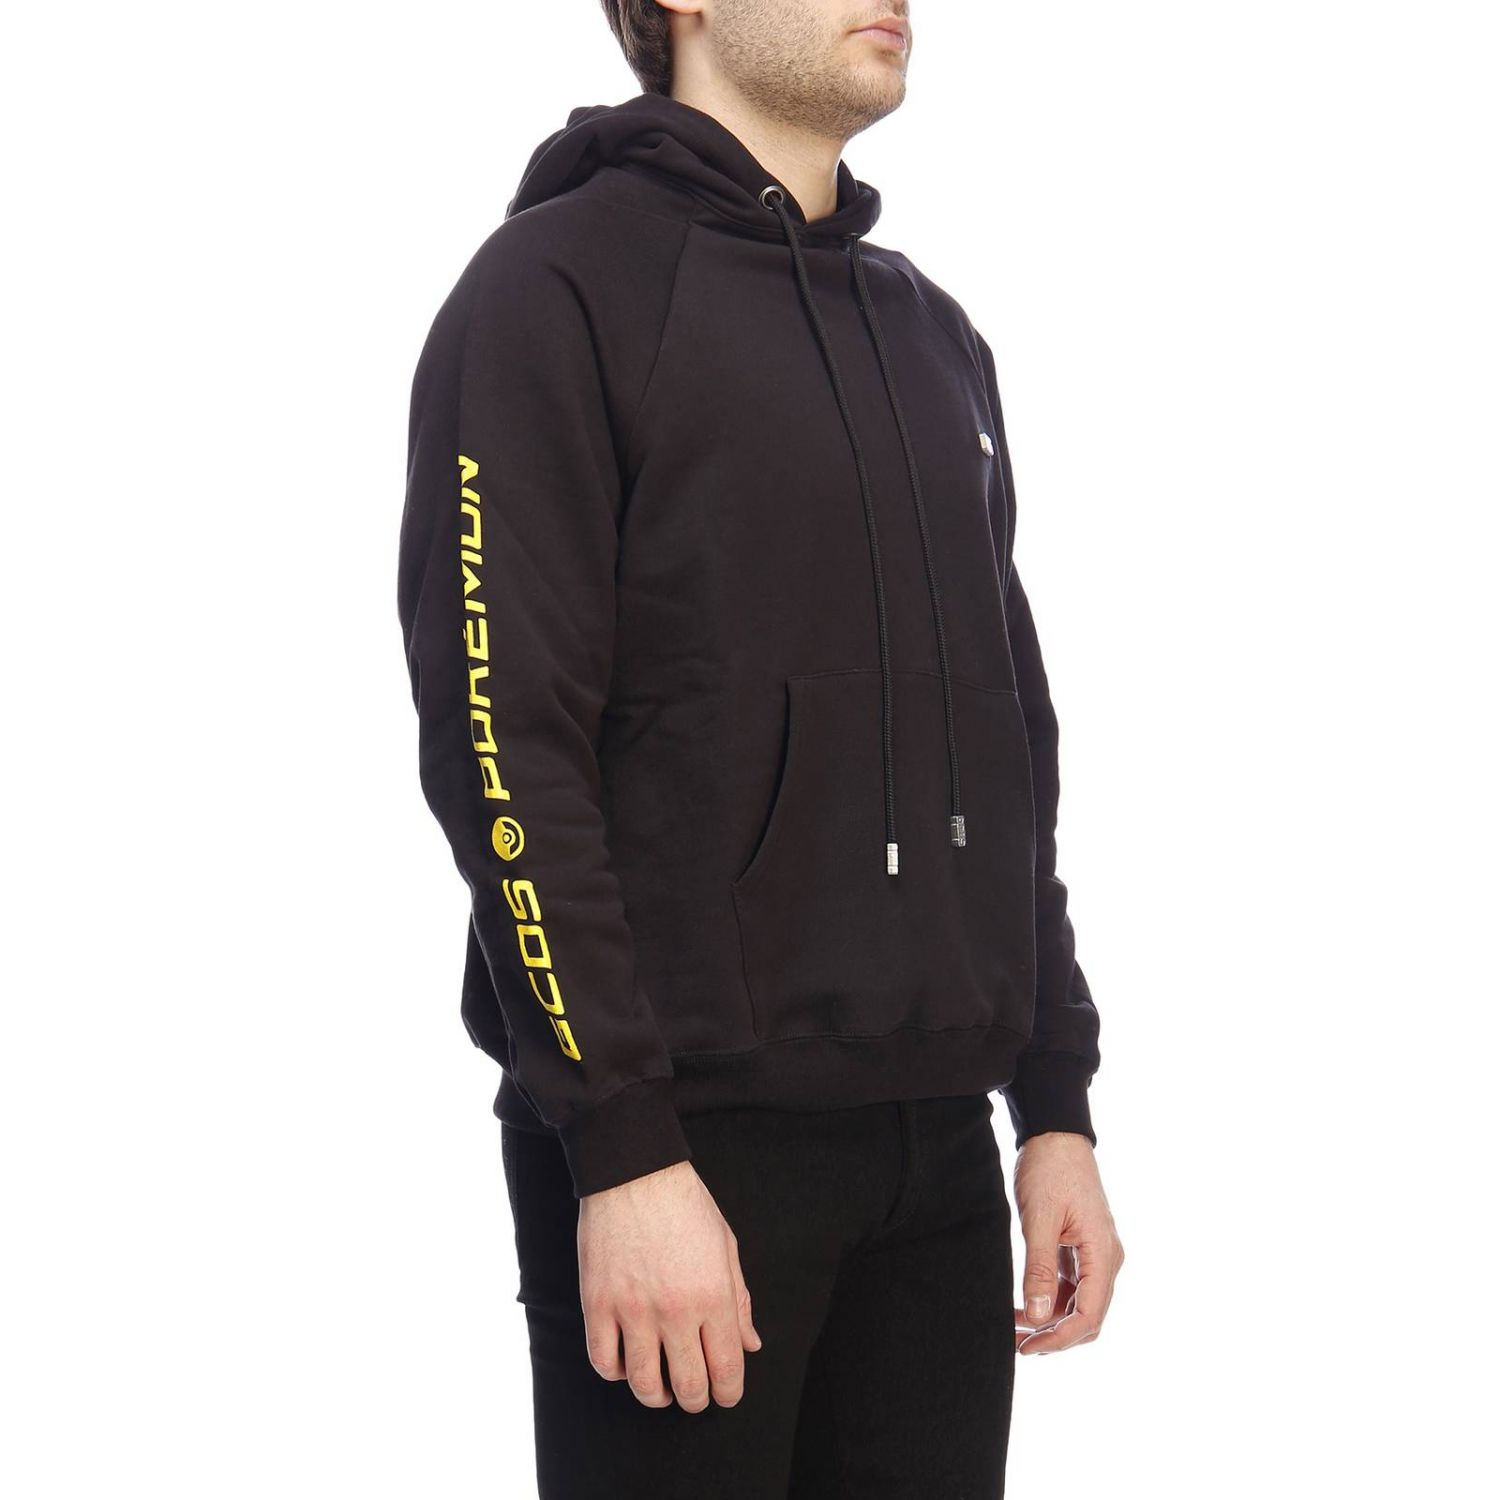 Jumper men Gcds black 2